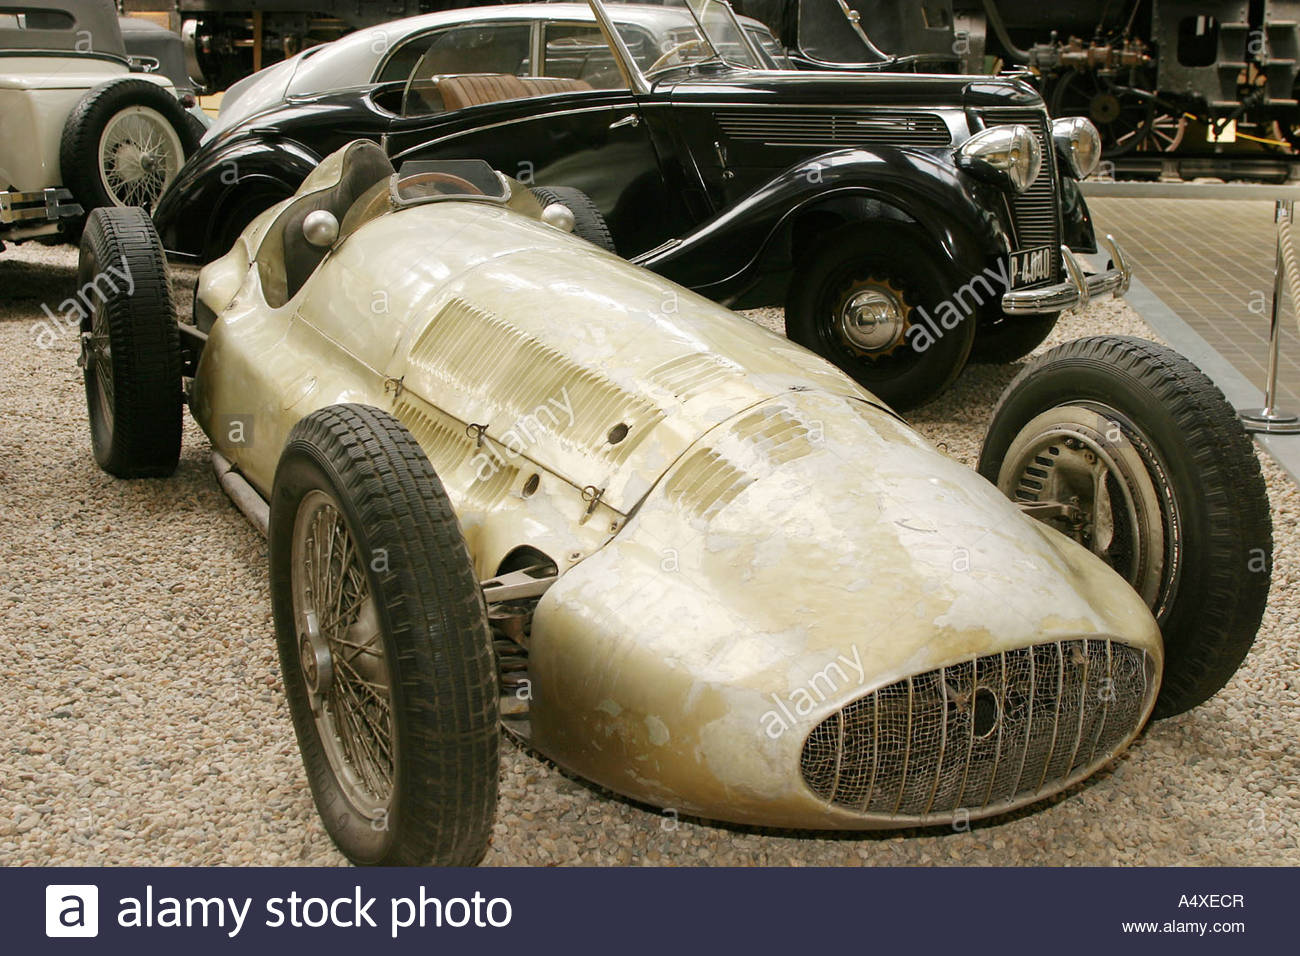 Mercedes-benz silberpfeil photo - 8